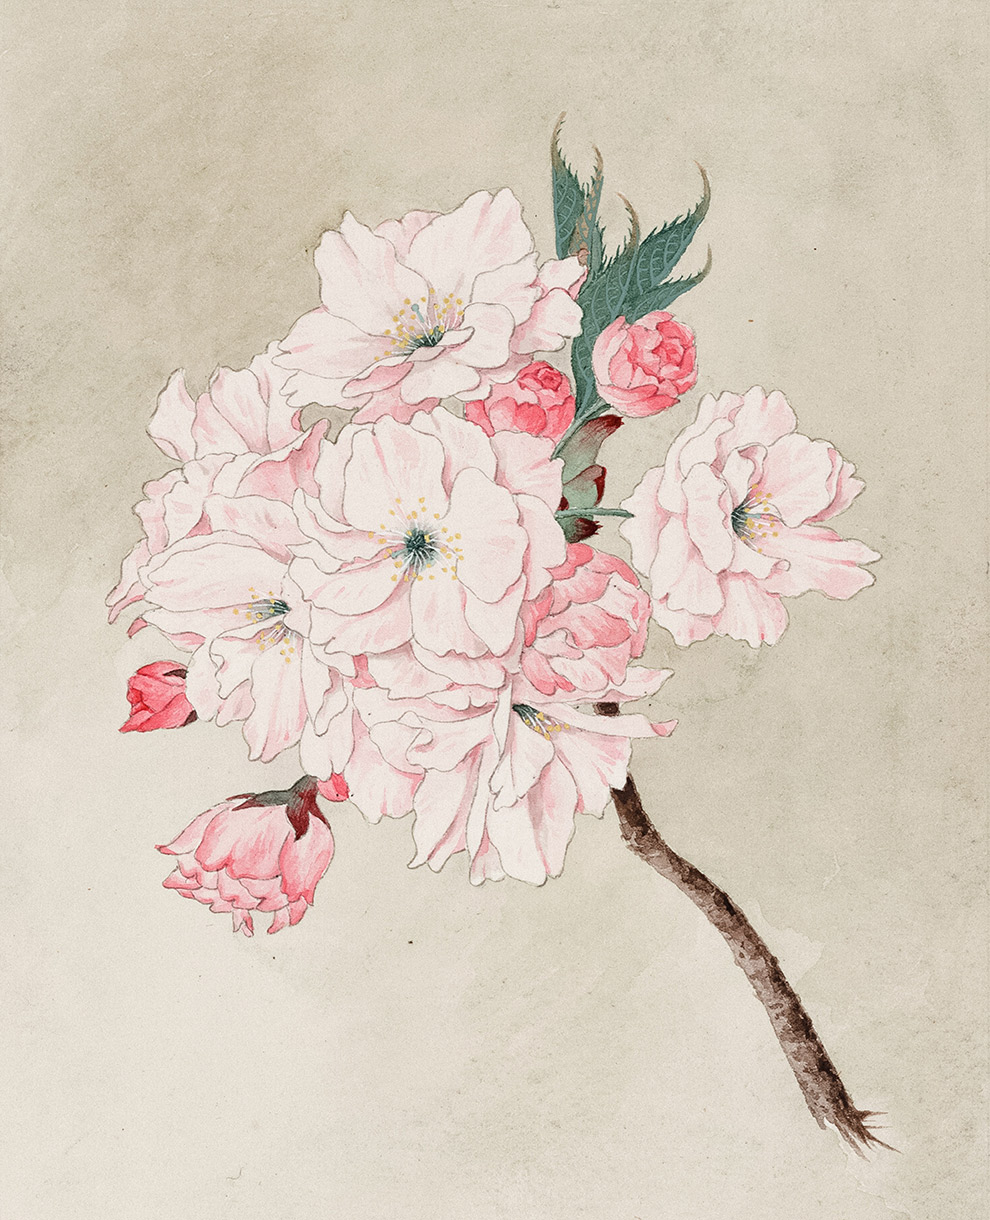 Illustration of cherry blossom on light brown background